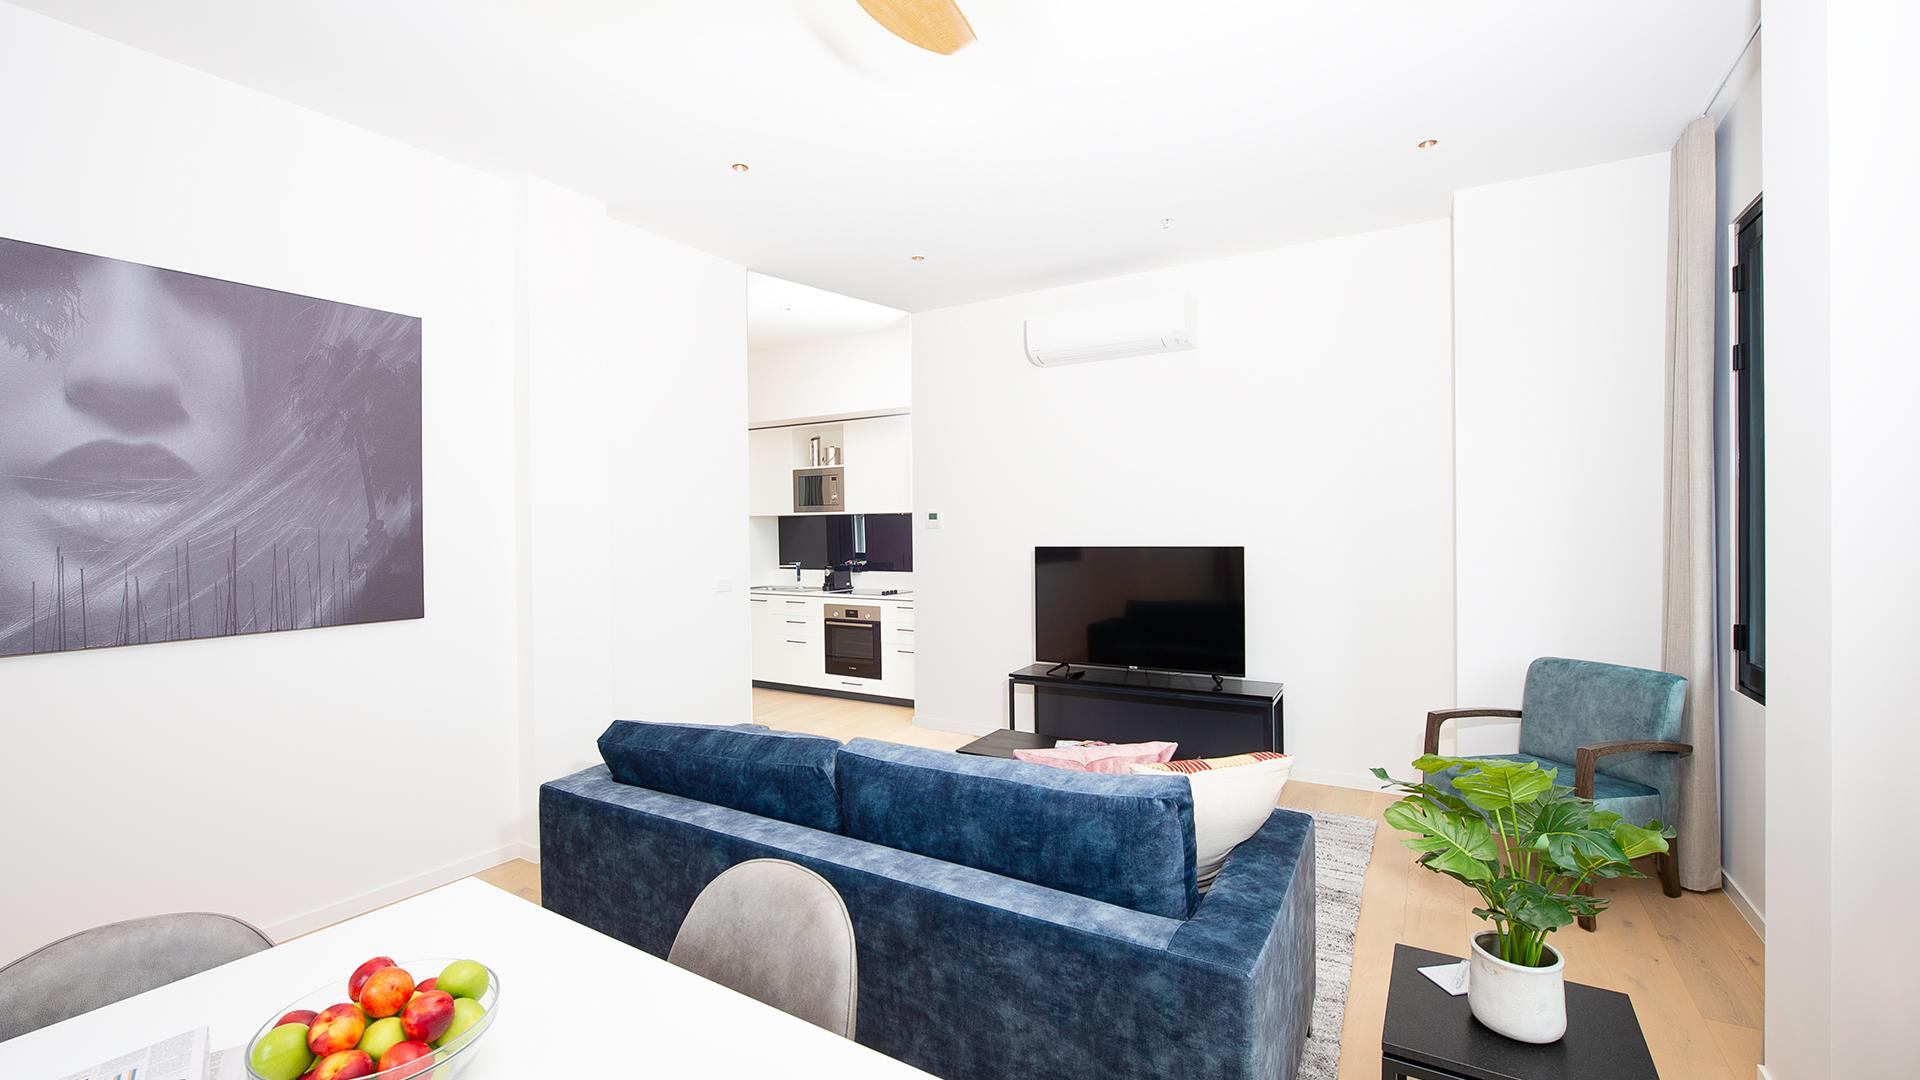 Two-Bedroom Apartment image 1 at R Hotel Geelong by Greater Geelong City, Victoria, Australia